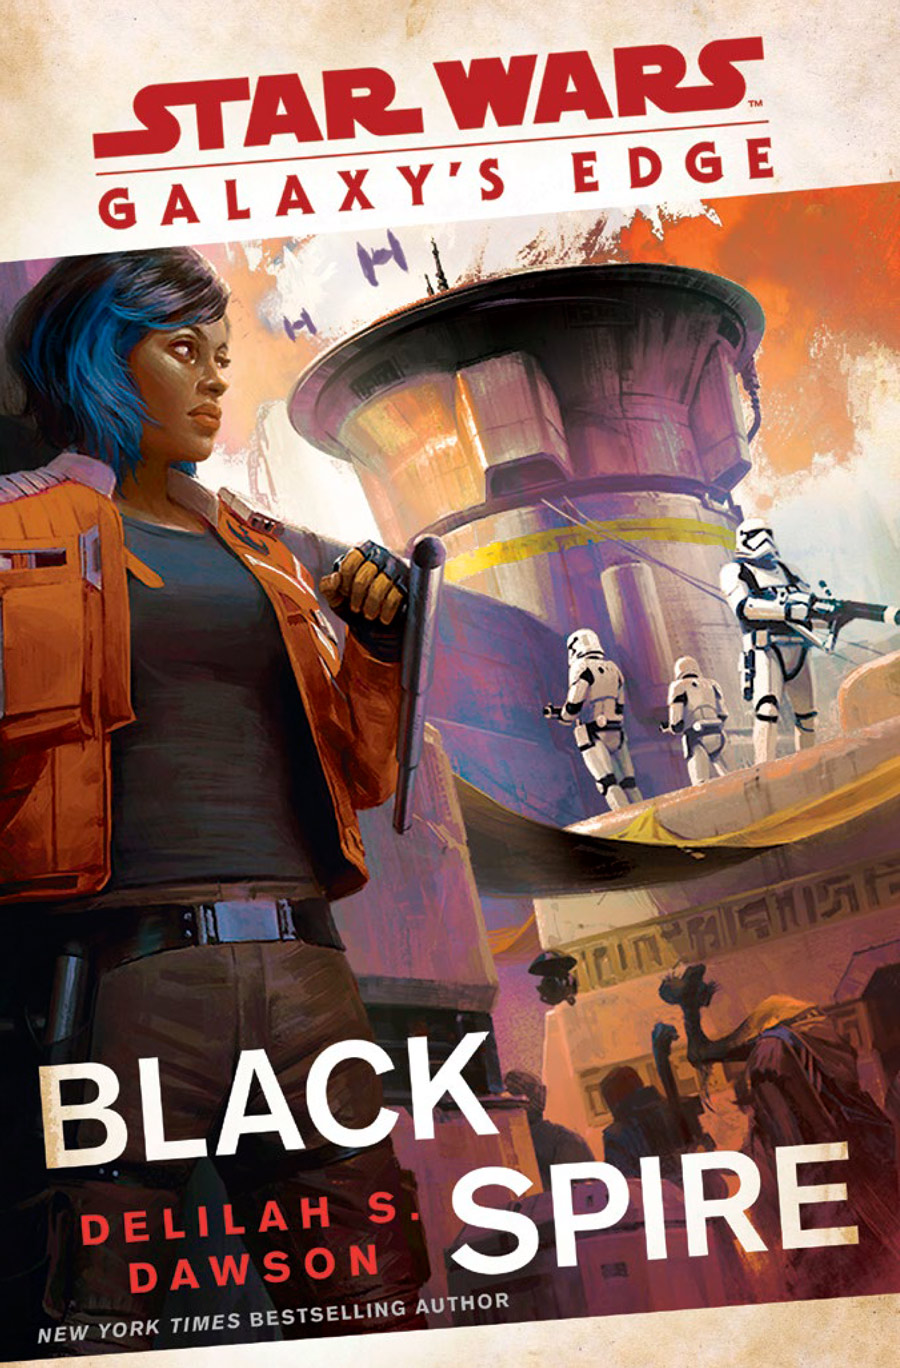 Star Wars lands' prequel book gets cover art and more details